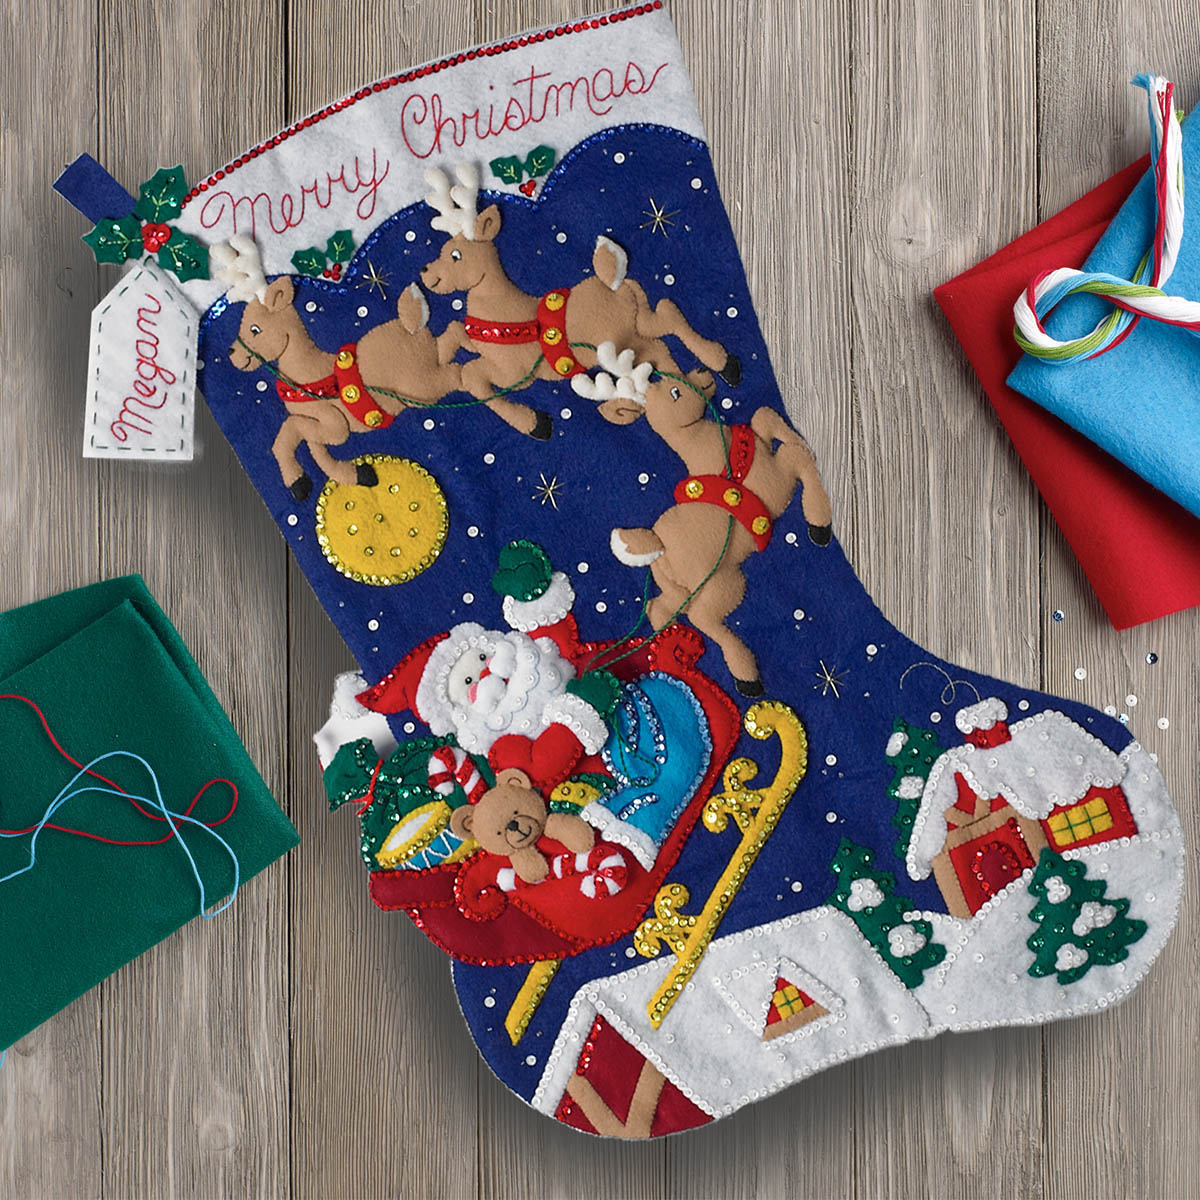 Bucilla ® Seasonal - Felt - Stocking Kits - Christmas Night Jumbo Stocking